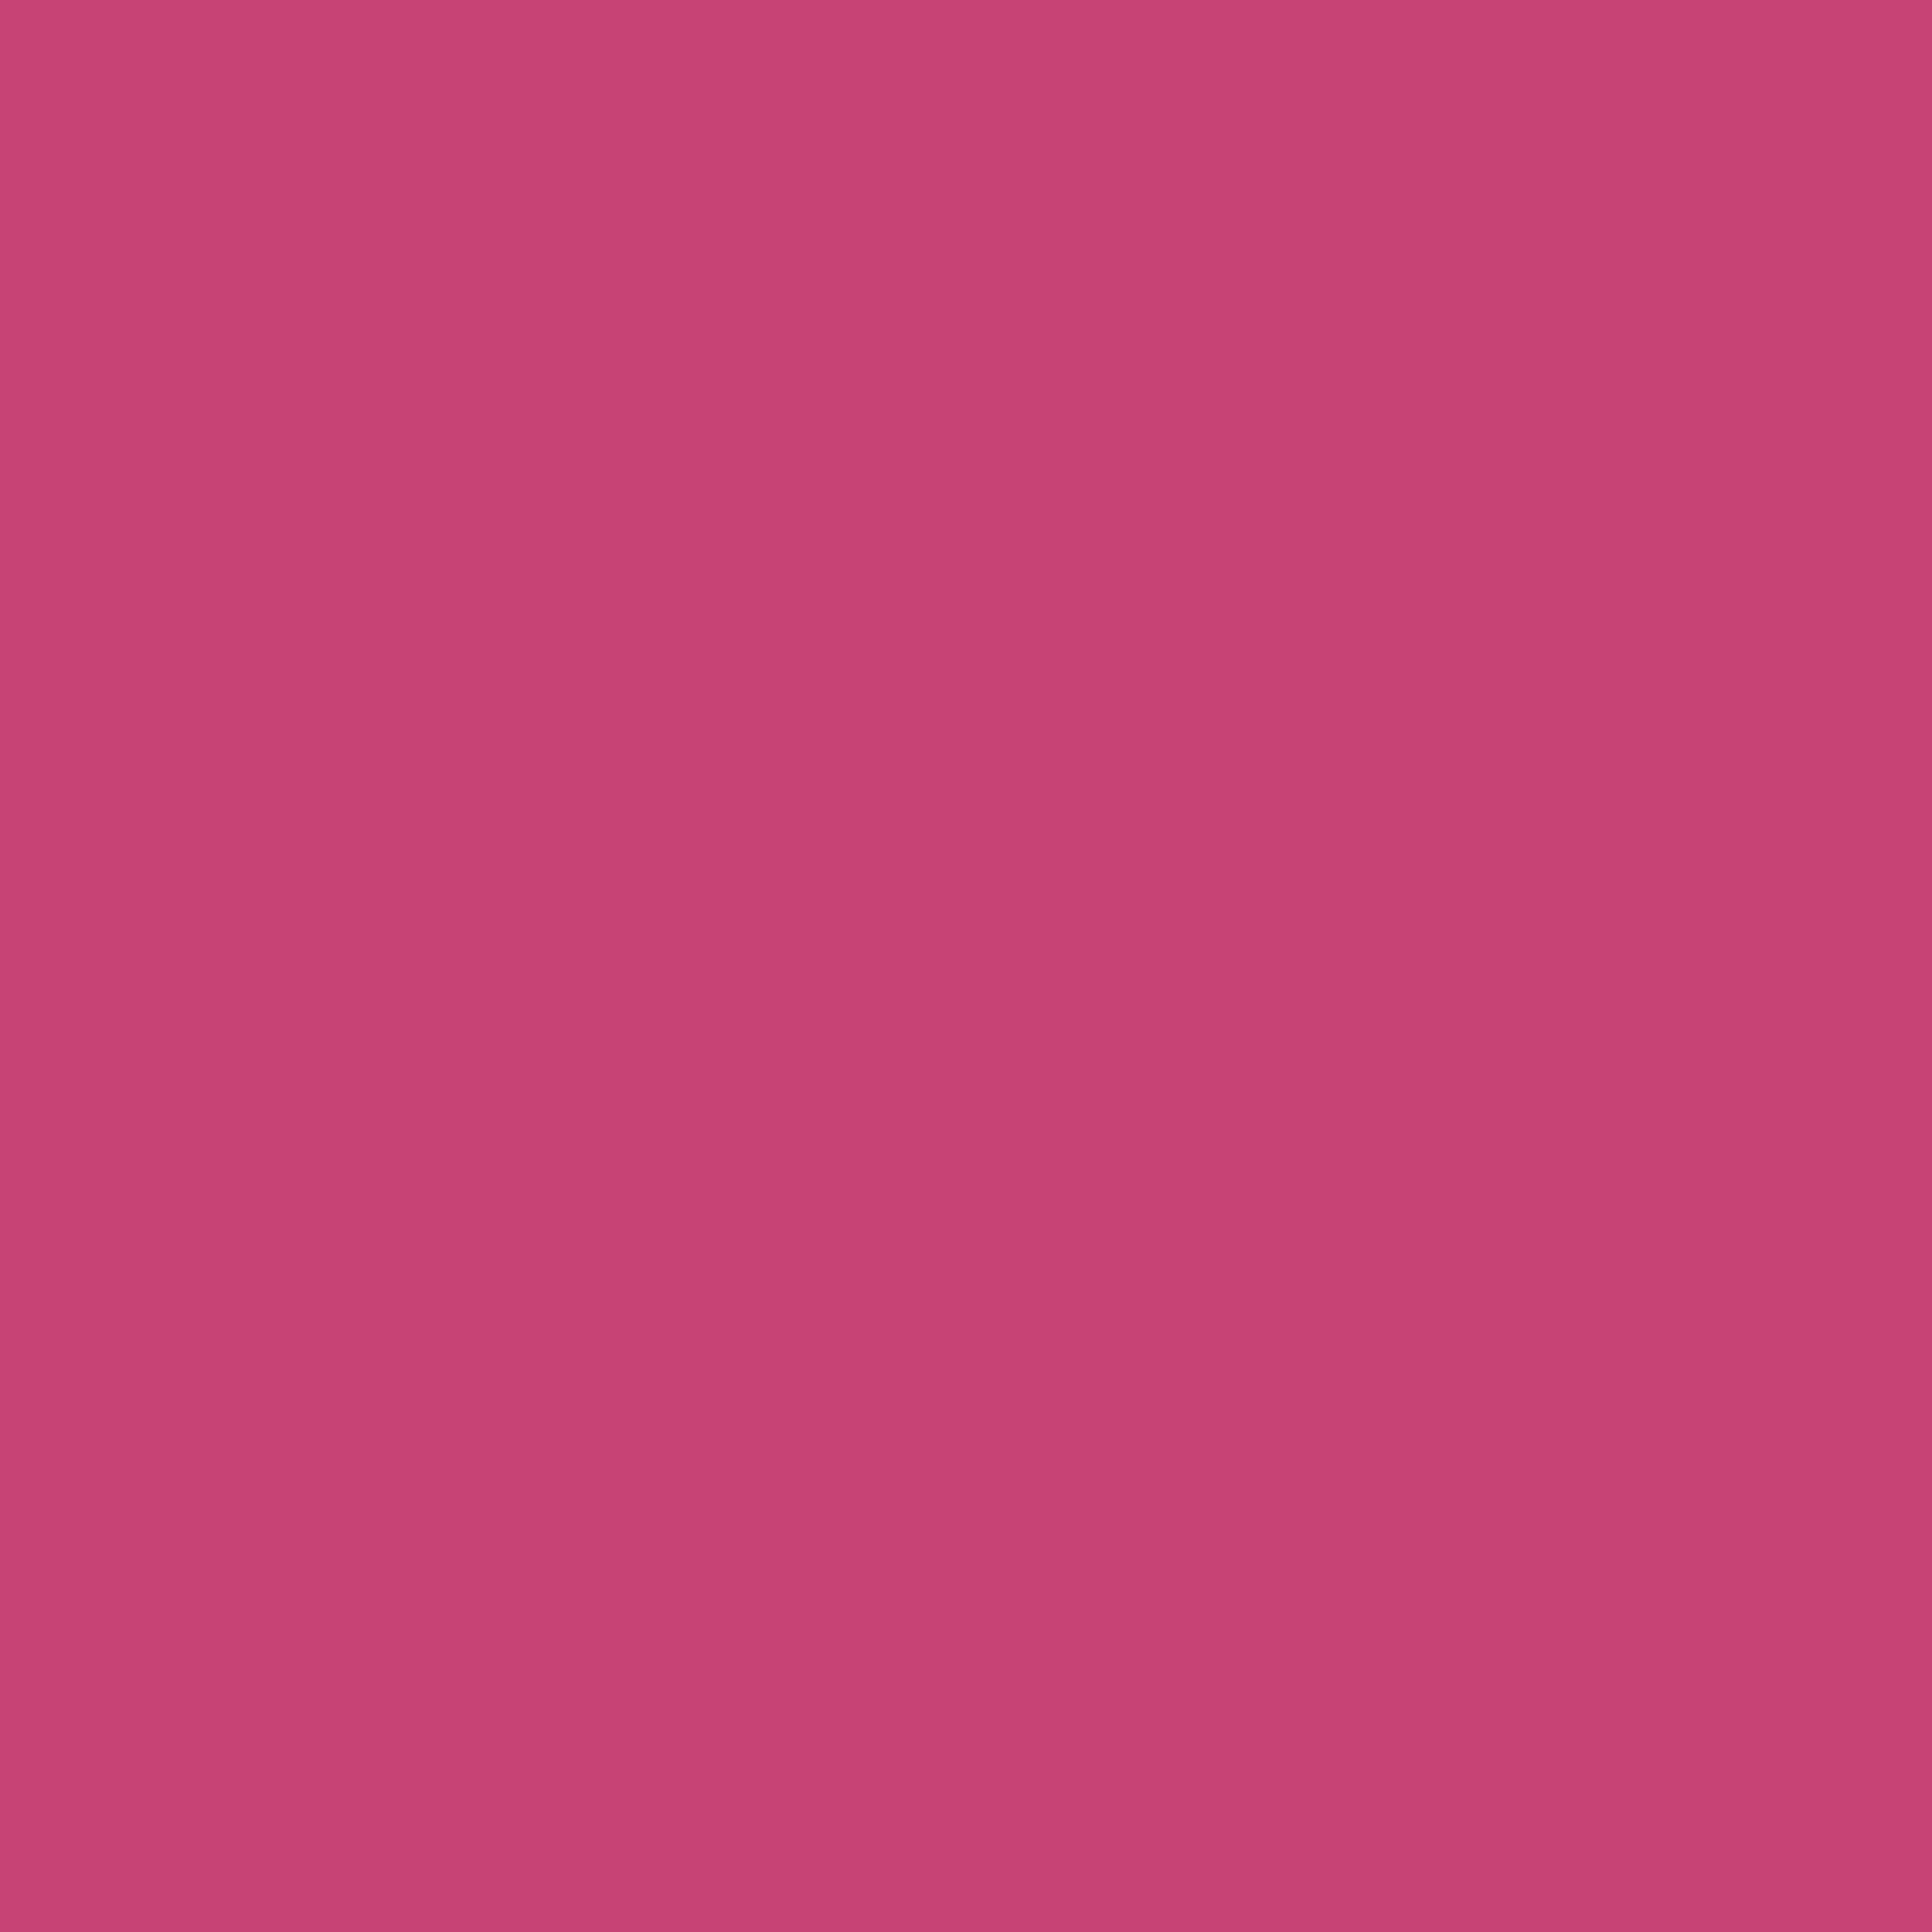 2048x2048 Fuchsia Rose Solid Color Background